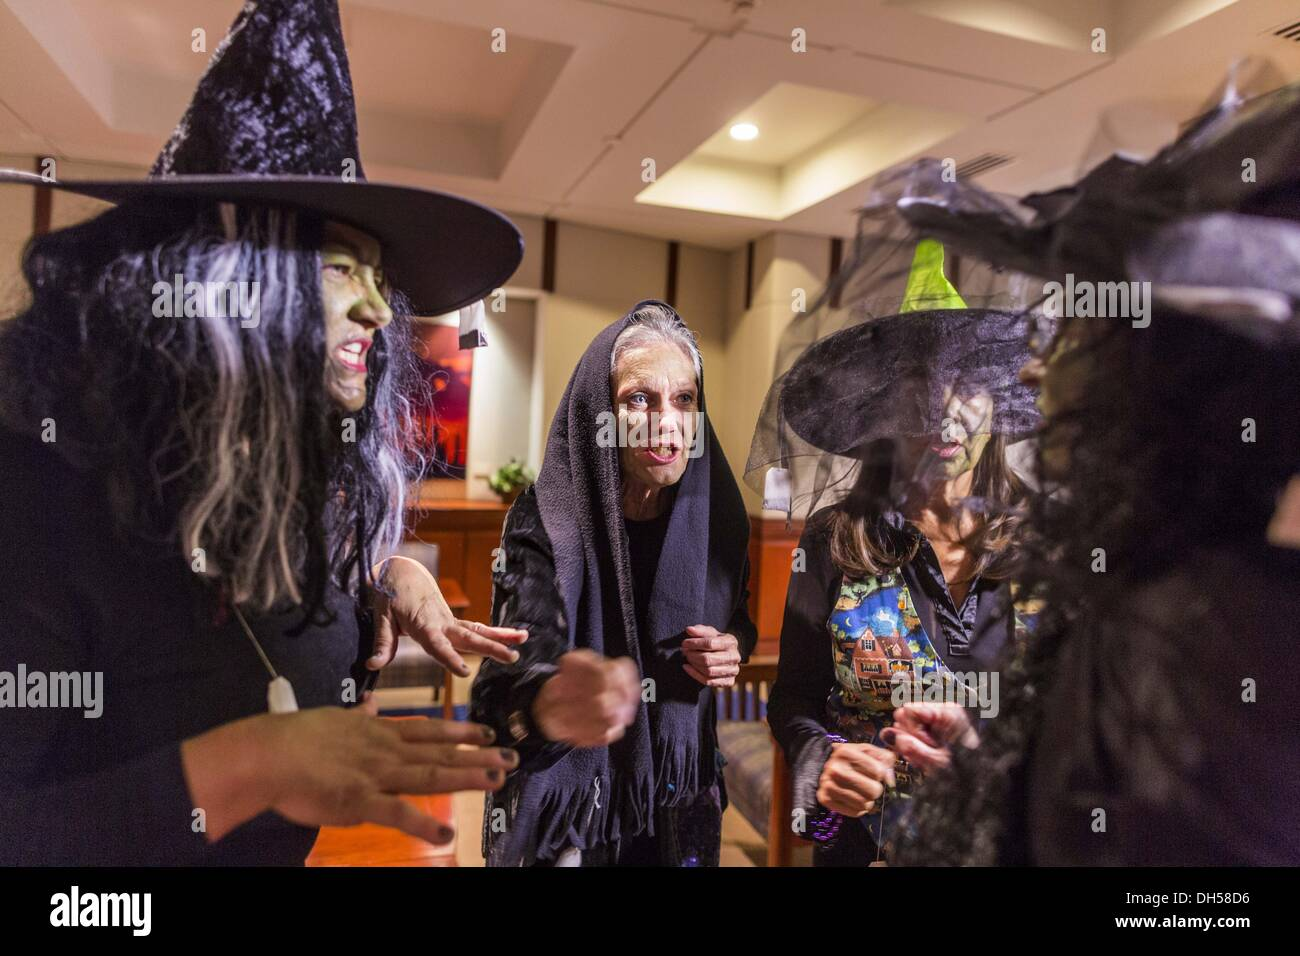 Phoenix, AZ, USA. 31st Oct, 2013. Immigration activists dressed as Halloween witches conjure a spell against Arizona Governor Jan Brewer Thursday. About 20 supporters of the DREAM Act and the deferred action program of President Barack Obama visited the office of Arizona Governor Jan Brewer to protest her decision to deny drivers licenses to Arizona DREAMERS and immigrants granted deferred action status by immigration authorities. Credit:  ZUMA Press, Inc./Alamy Live News - Stock Image